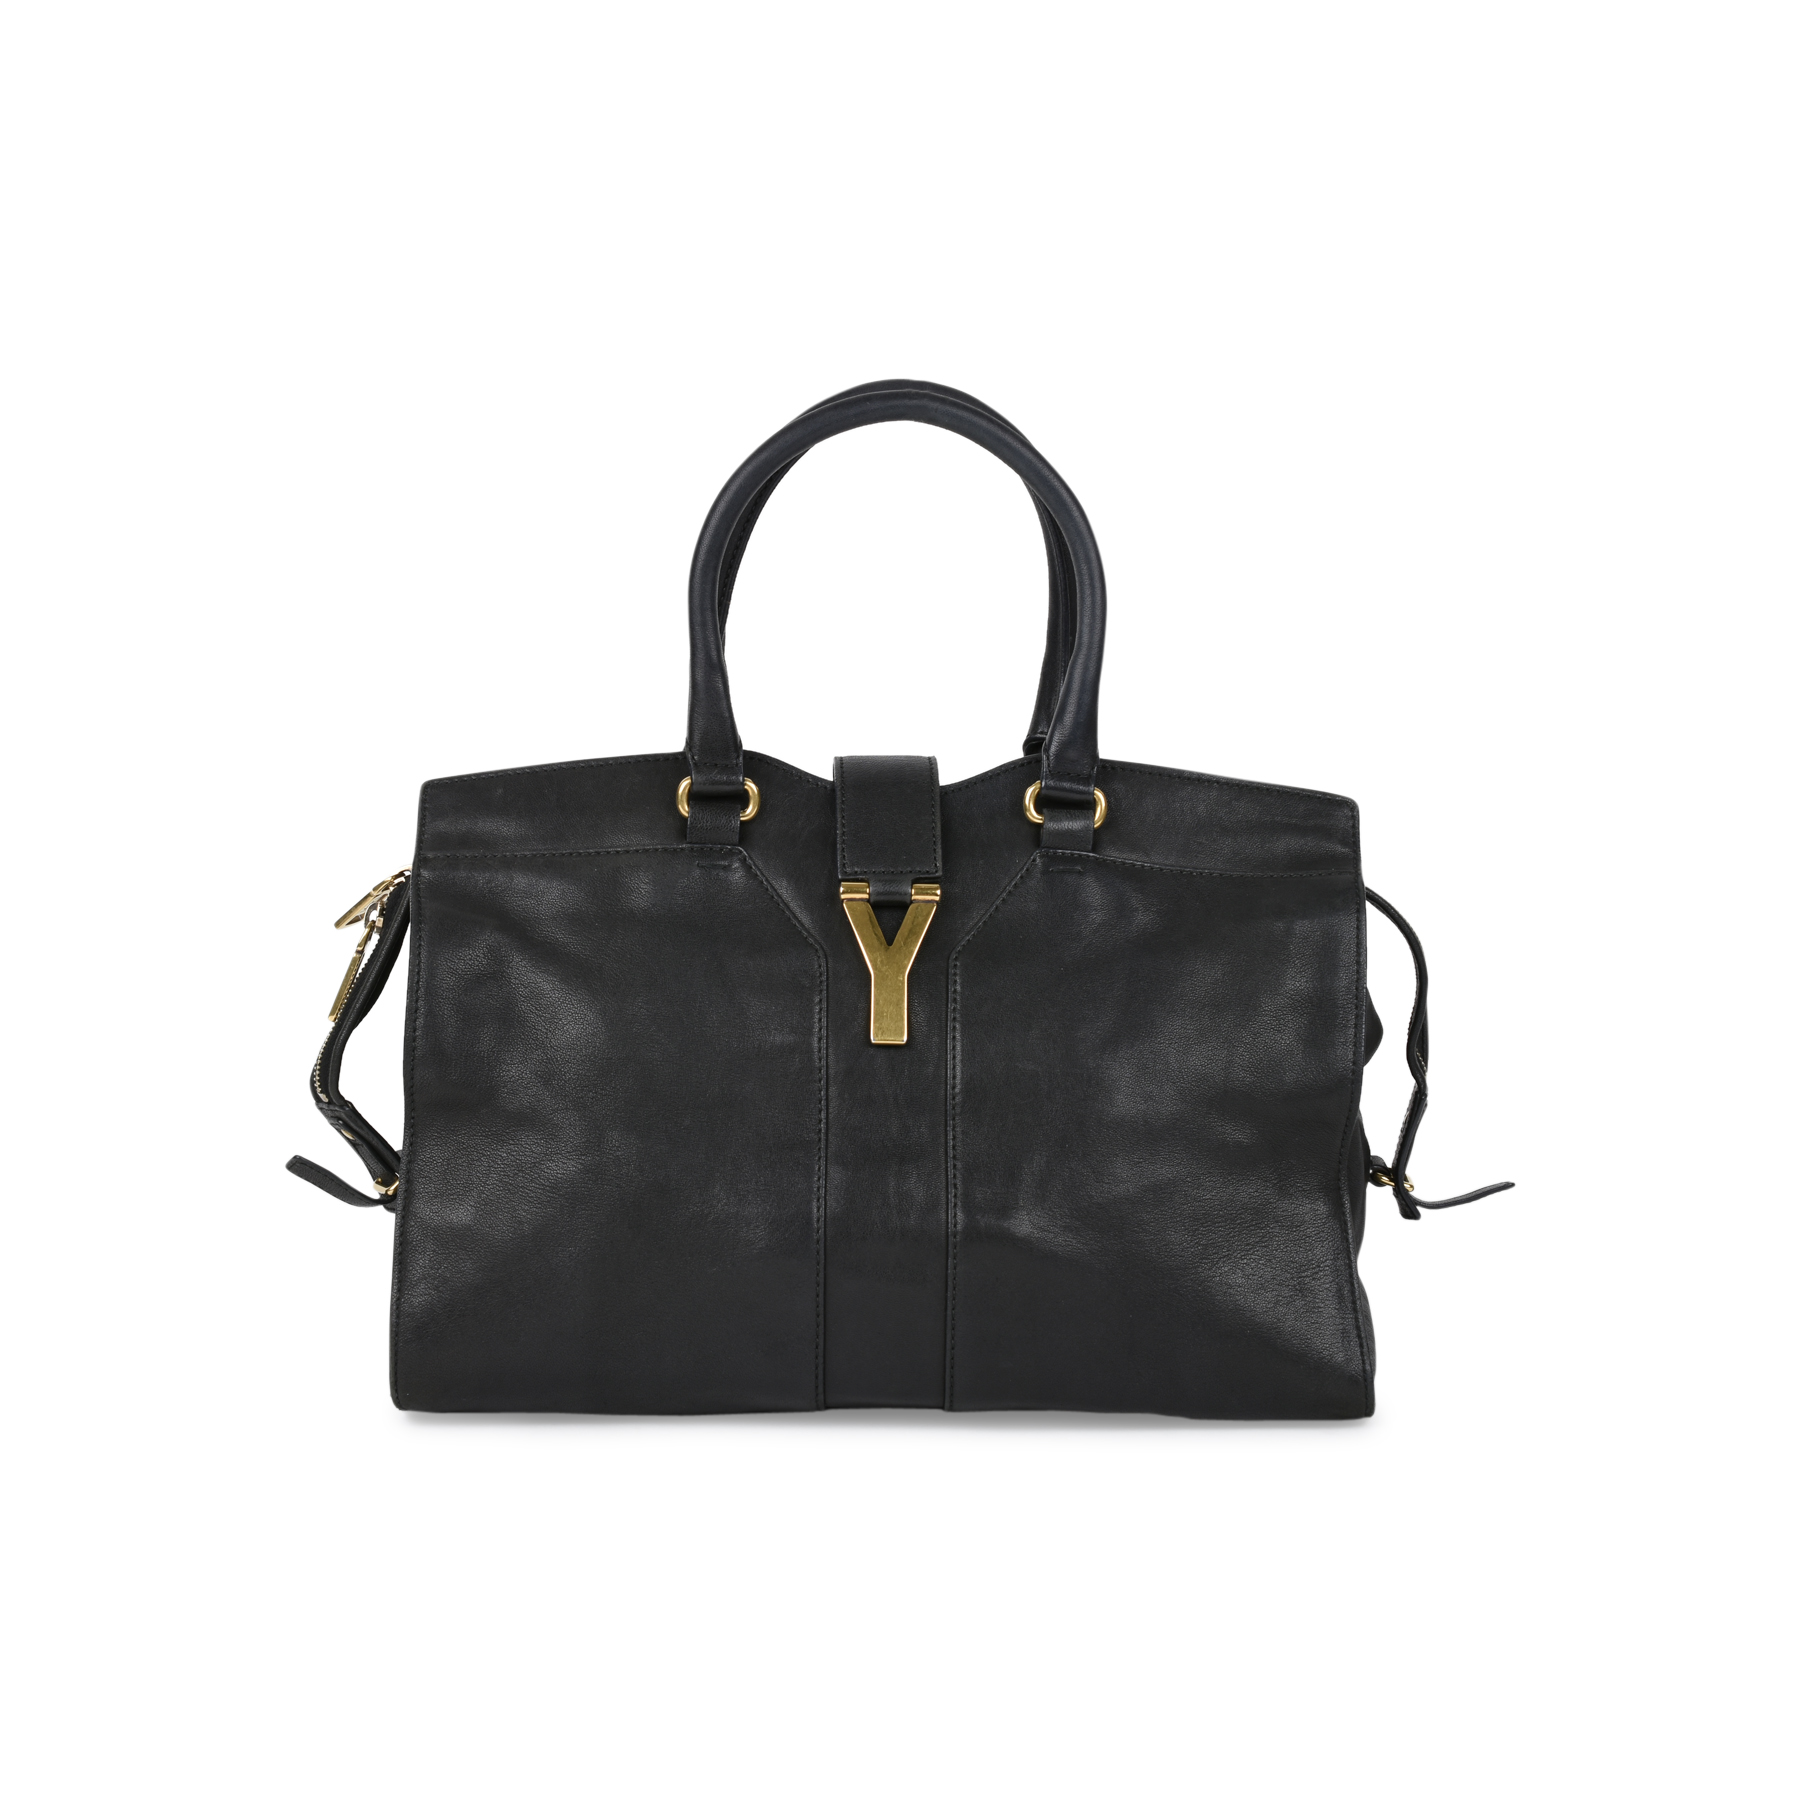 557a66debb Authentic Second Hand Yves Saint Laurent Cabas Chyc Tote (PSS-506-00011) -  THE FIFTH COLLECTION